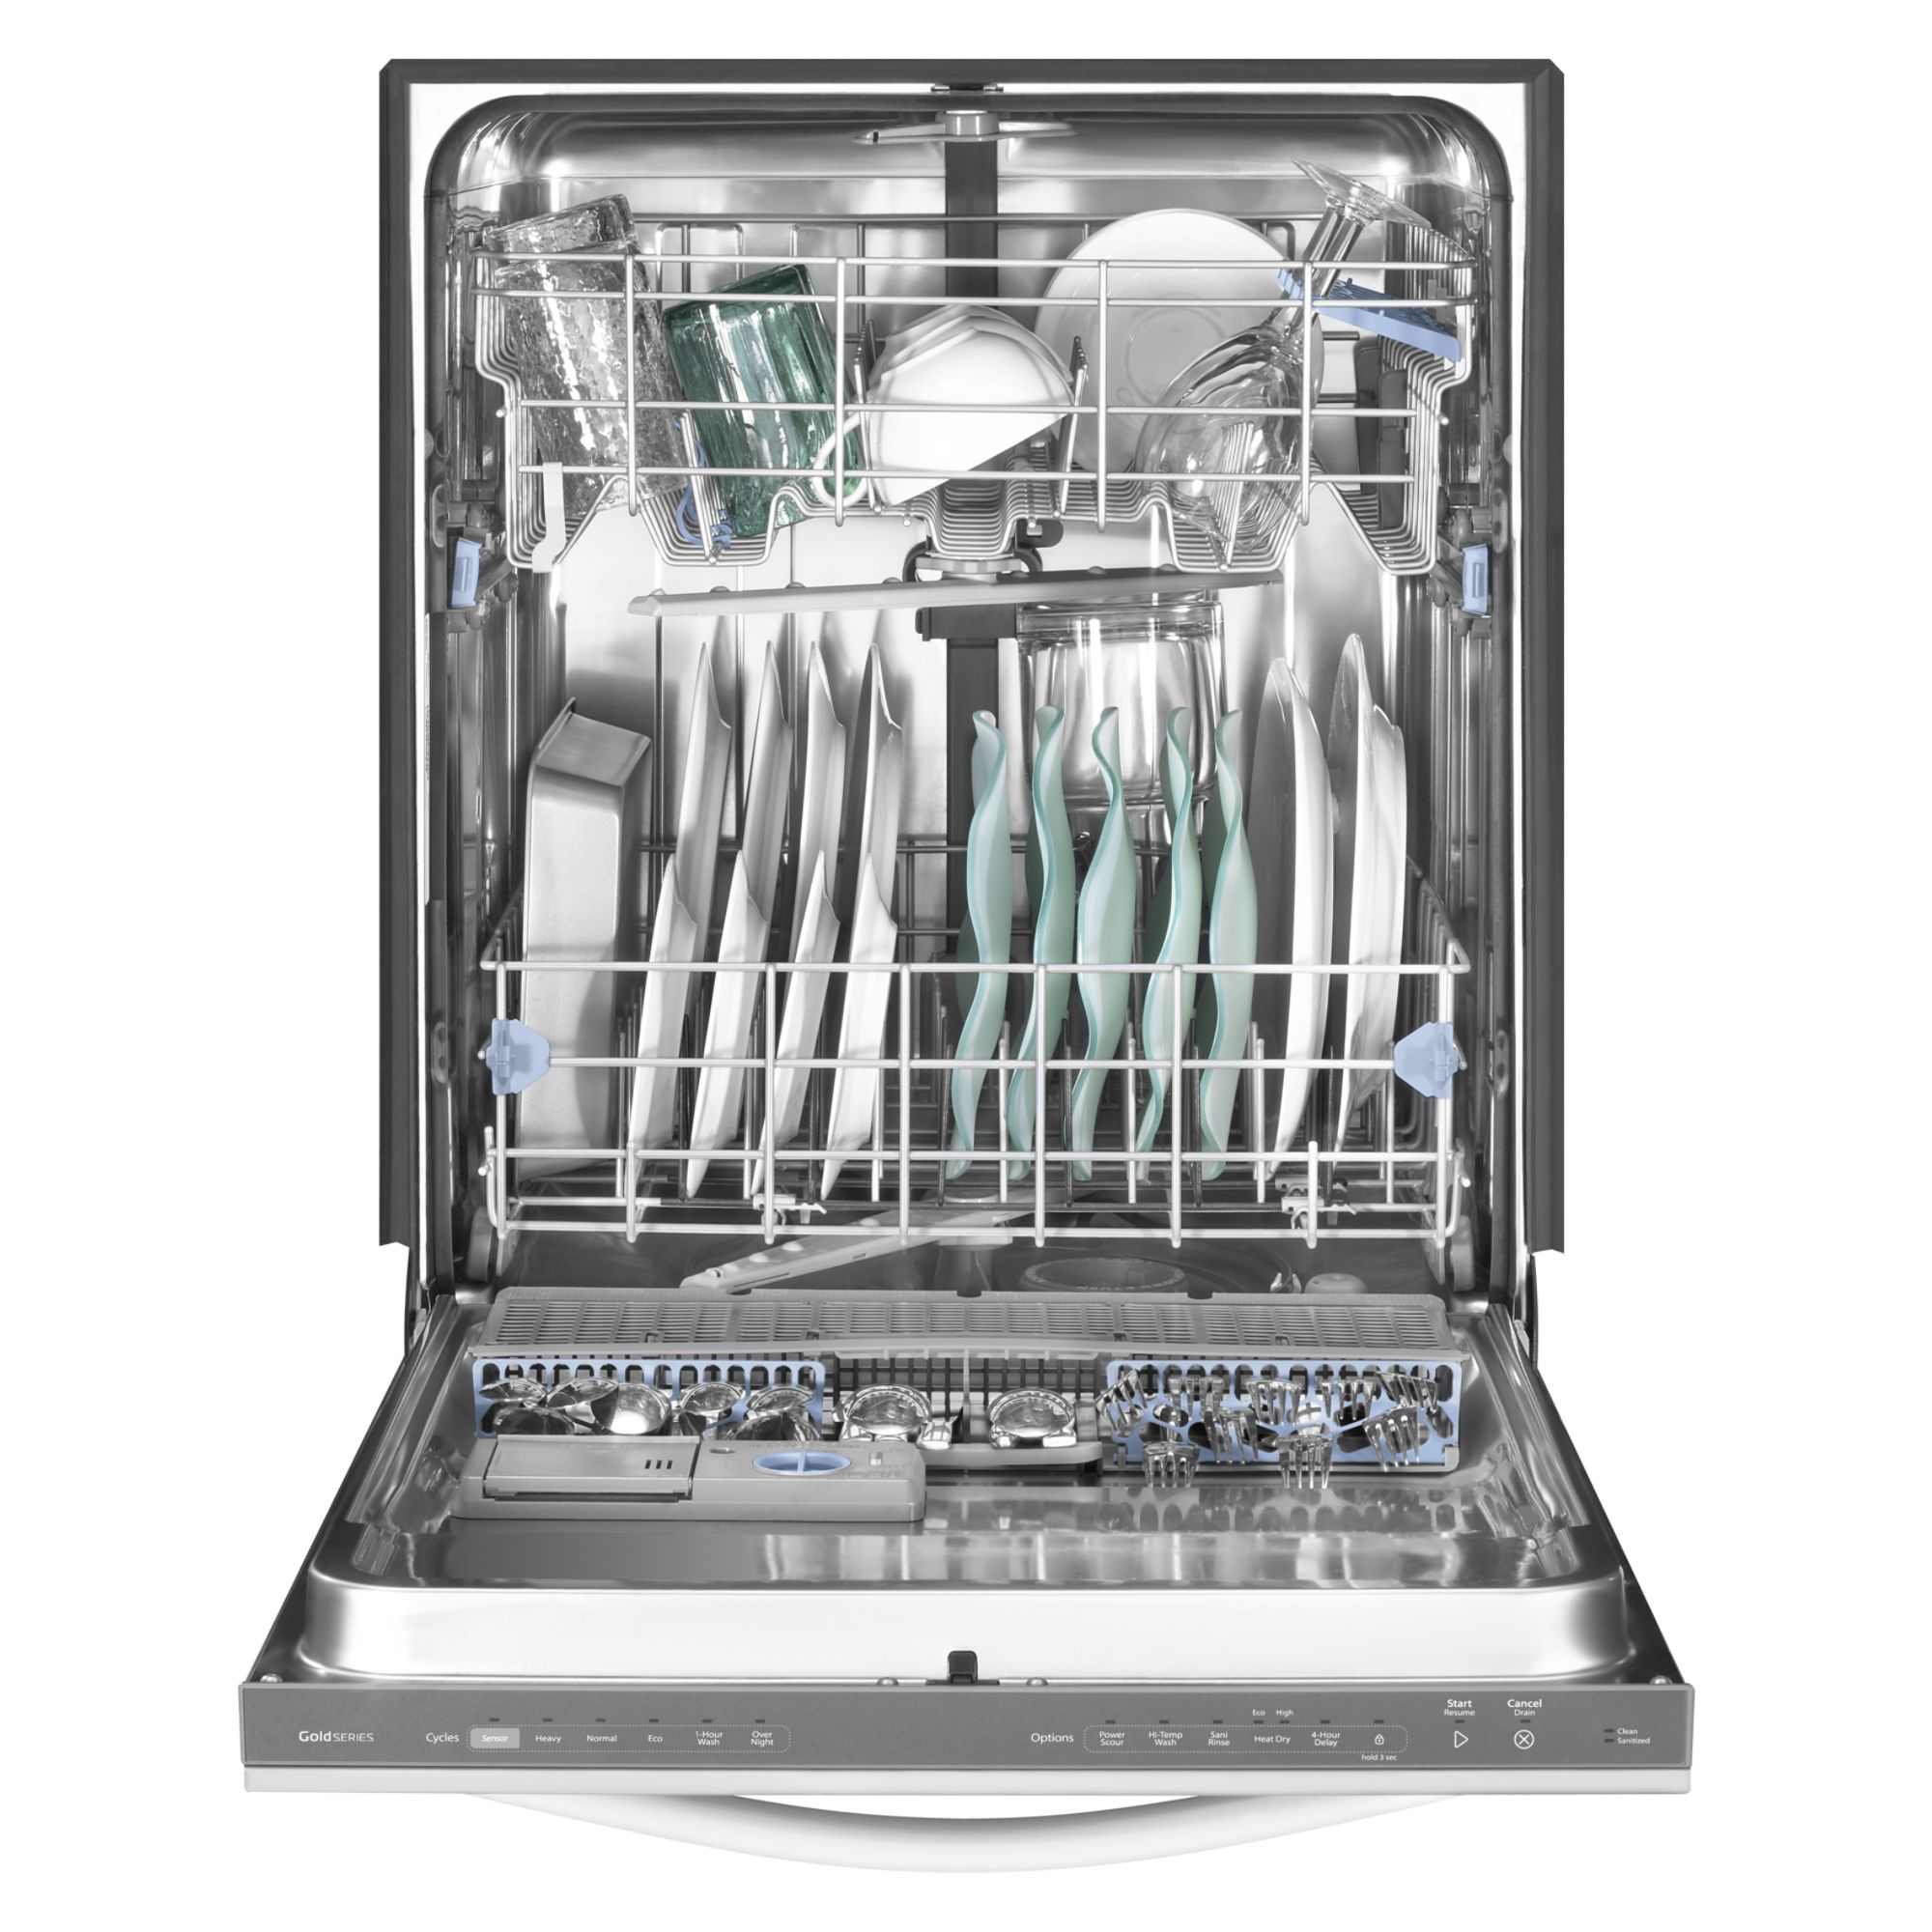 "Whirlpool 24"" Built-In Dishwasher w/ PowerScour™ Option - Stainless Steel"